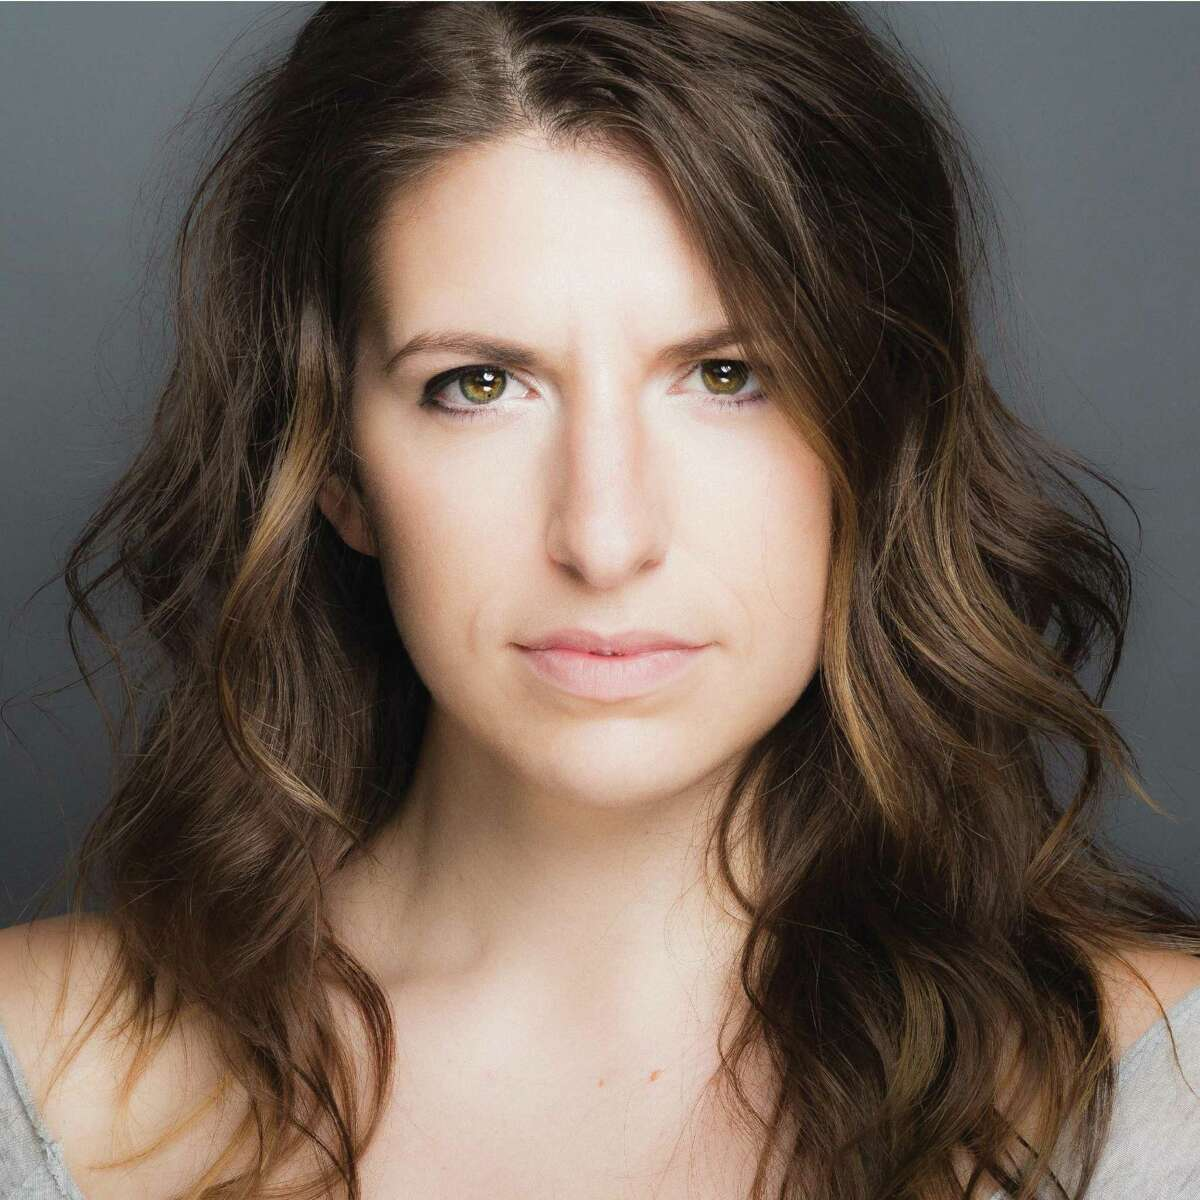 """Stephanie Genito plays Cassie, a dancer auditioning for a spot in a Broadway musical, in """"A Chorus Line,"""" on the stage at Ivoryton Playhouse, Aug. 8-Sept. 2."""